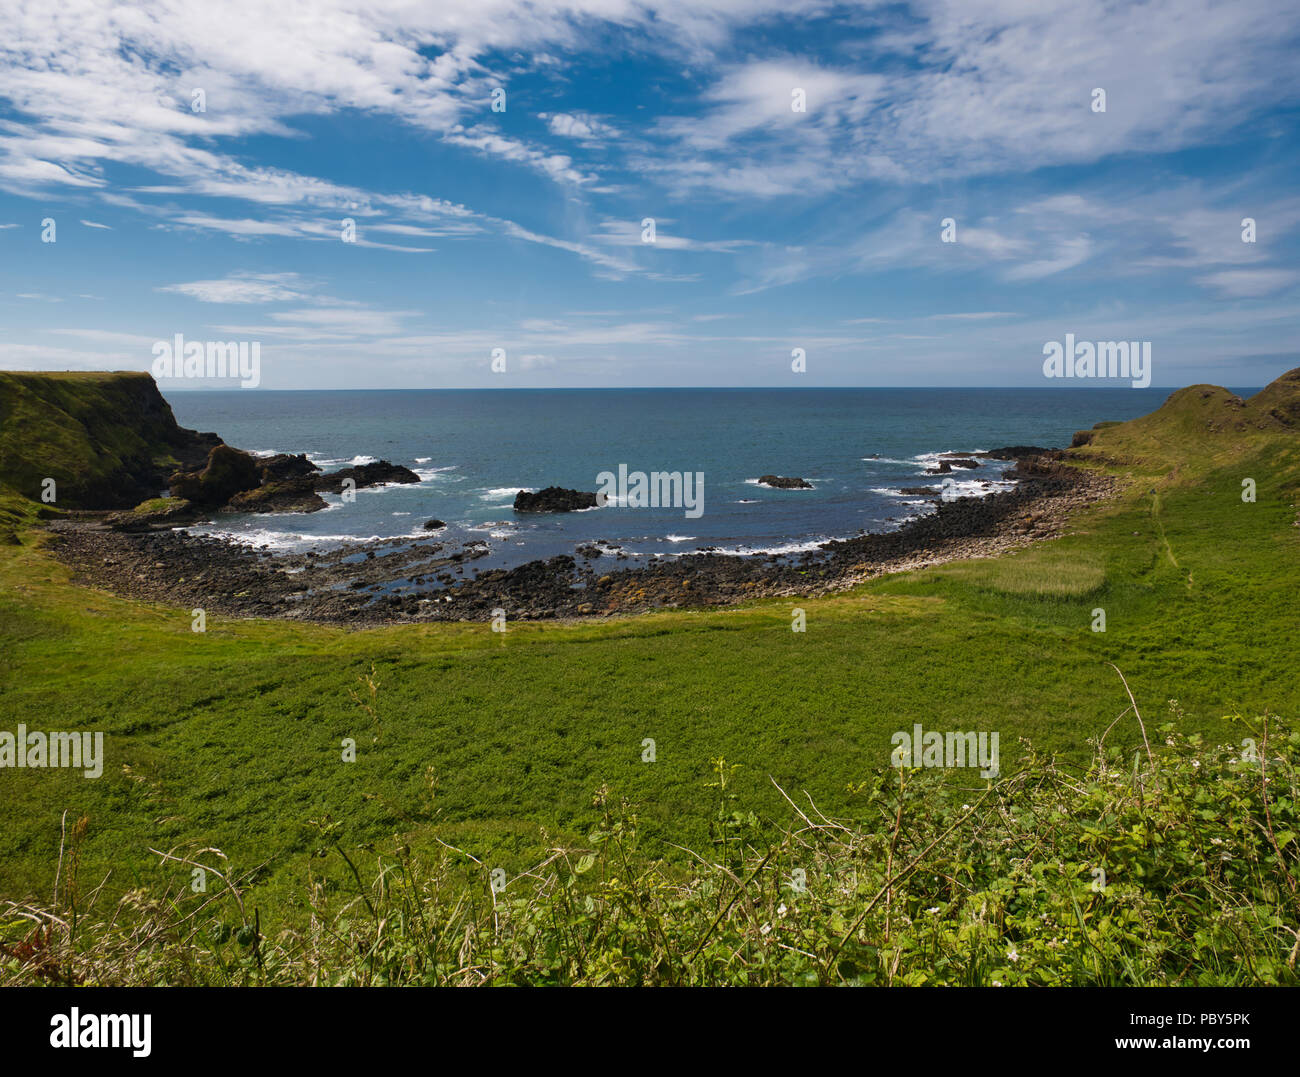 Small bay with black stones on the coast of Causeway with a green field in the foreground Stock Photo